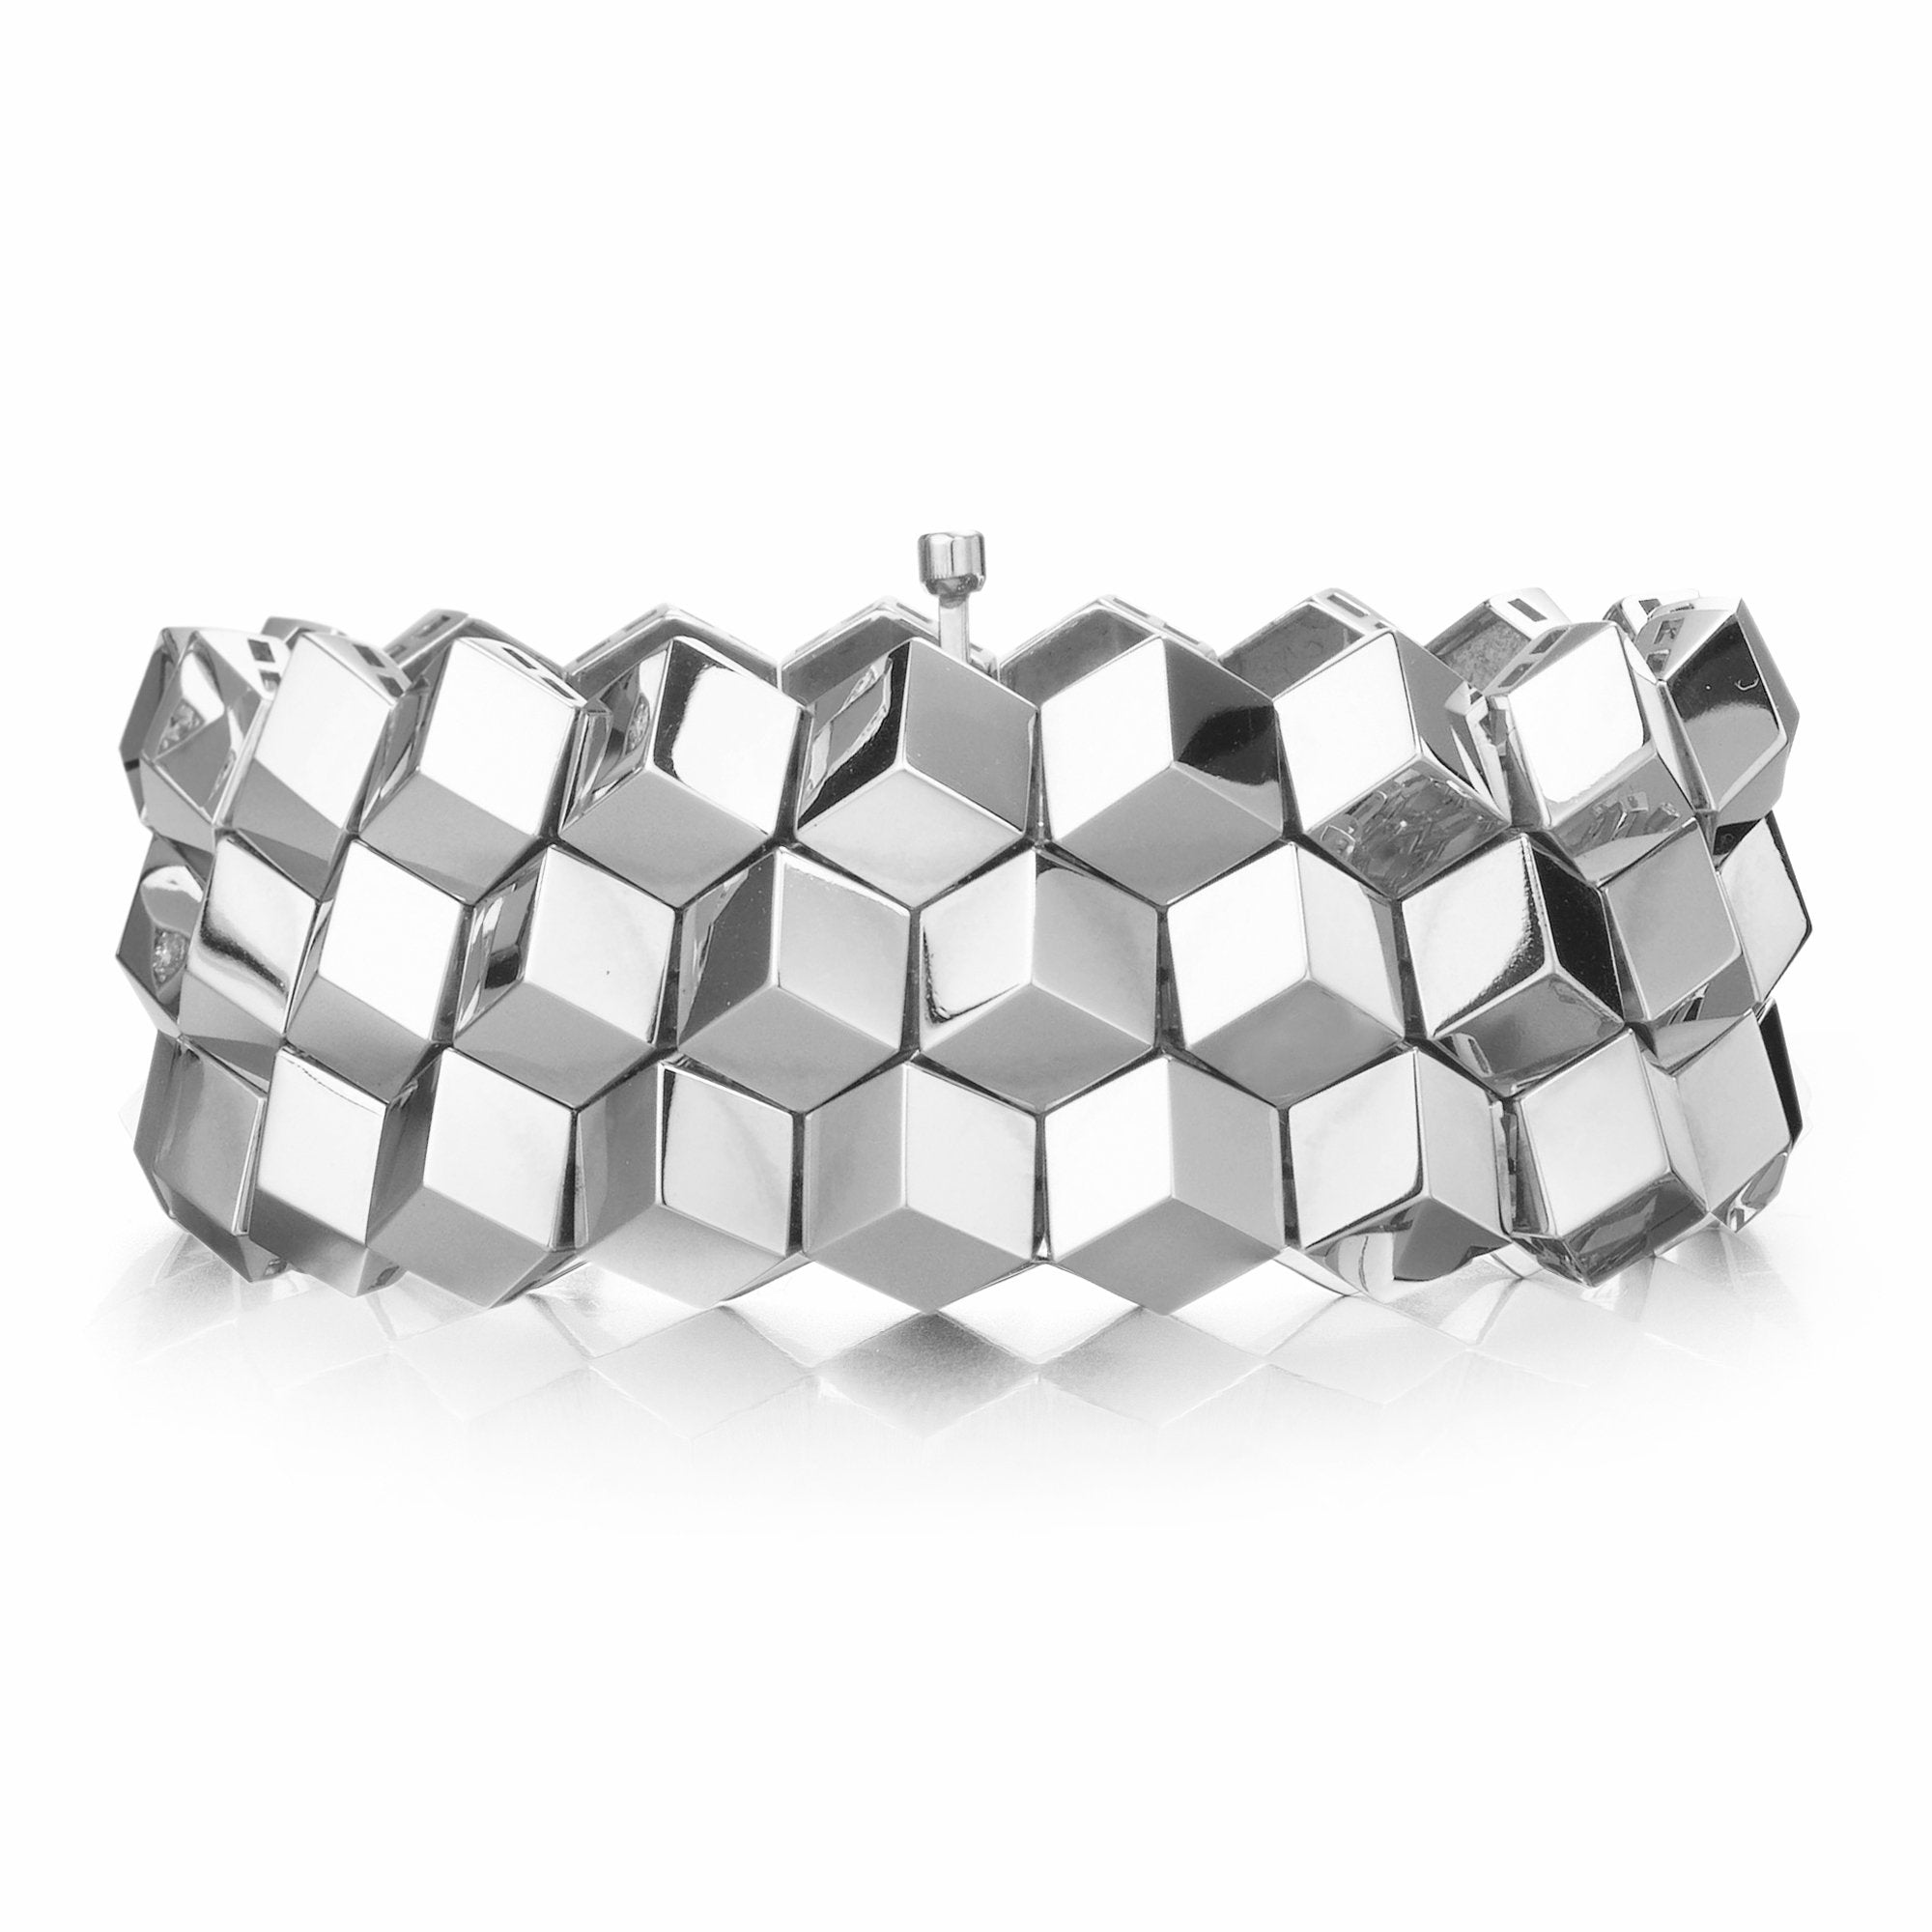 White Gold 'Brillante®' Bracelet, Medium - Paolo Costagli - 1